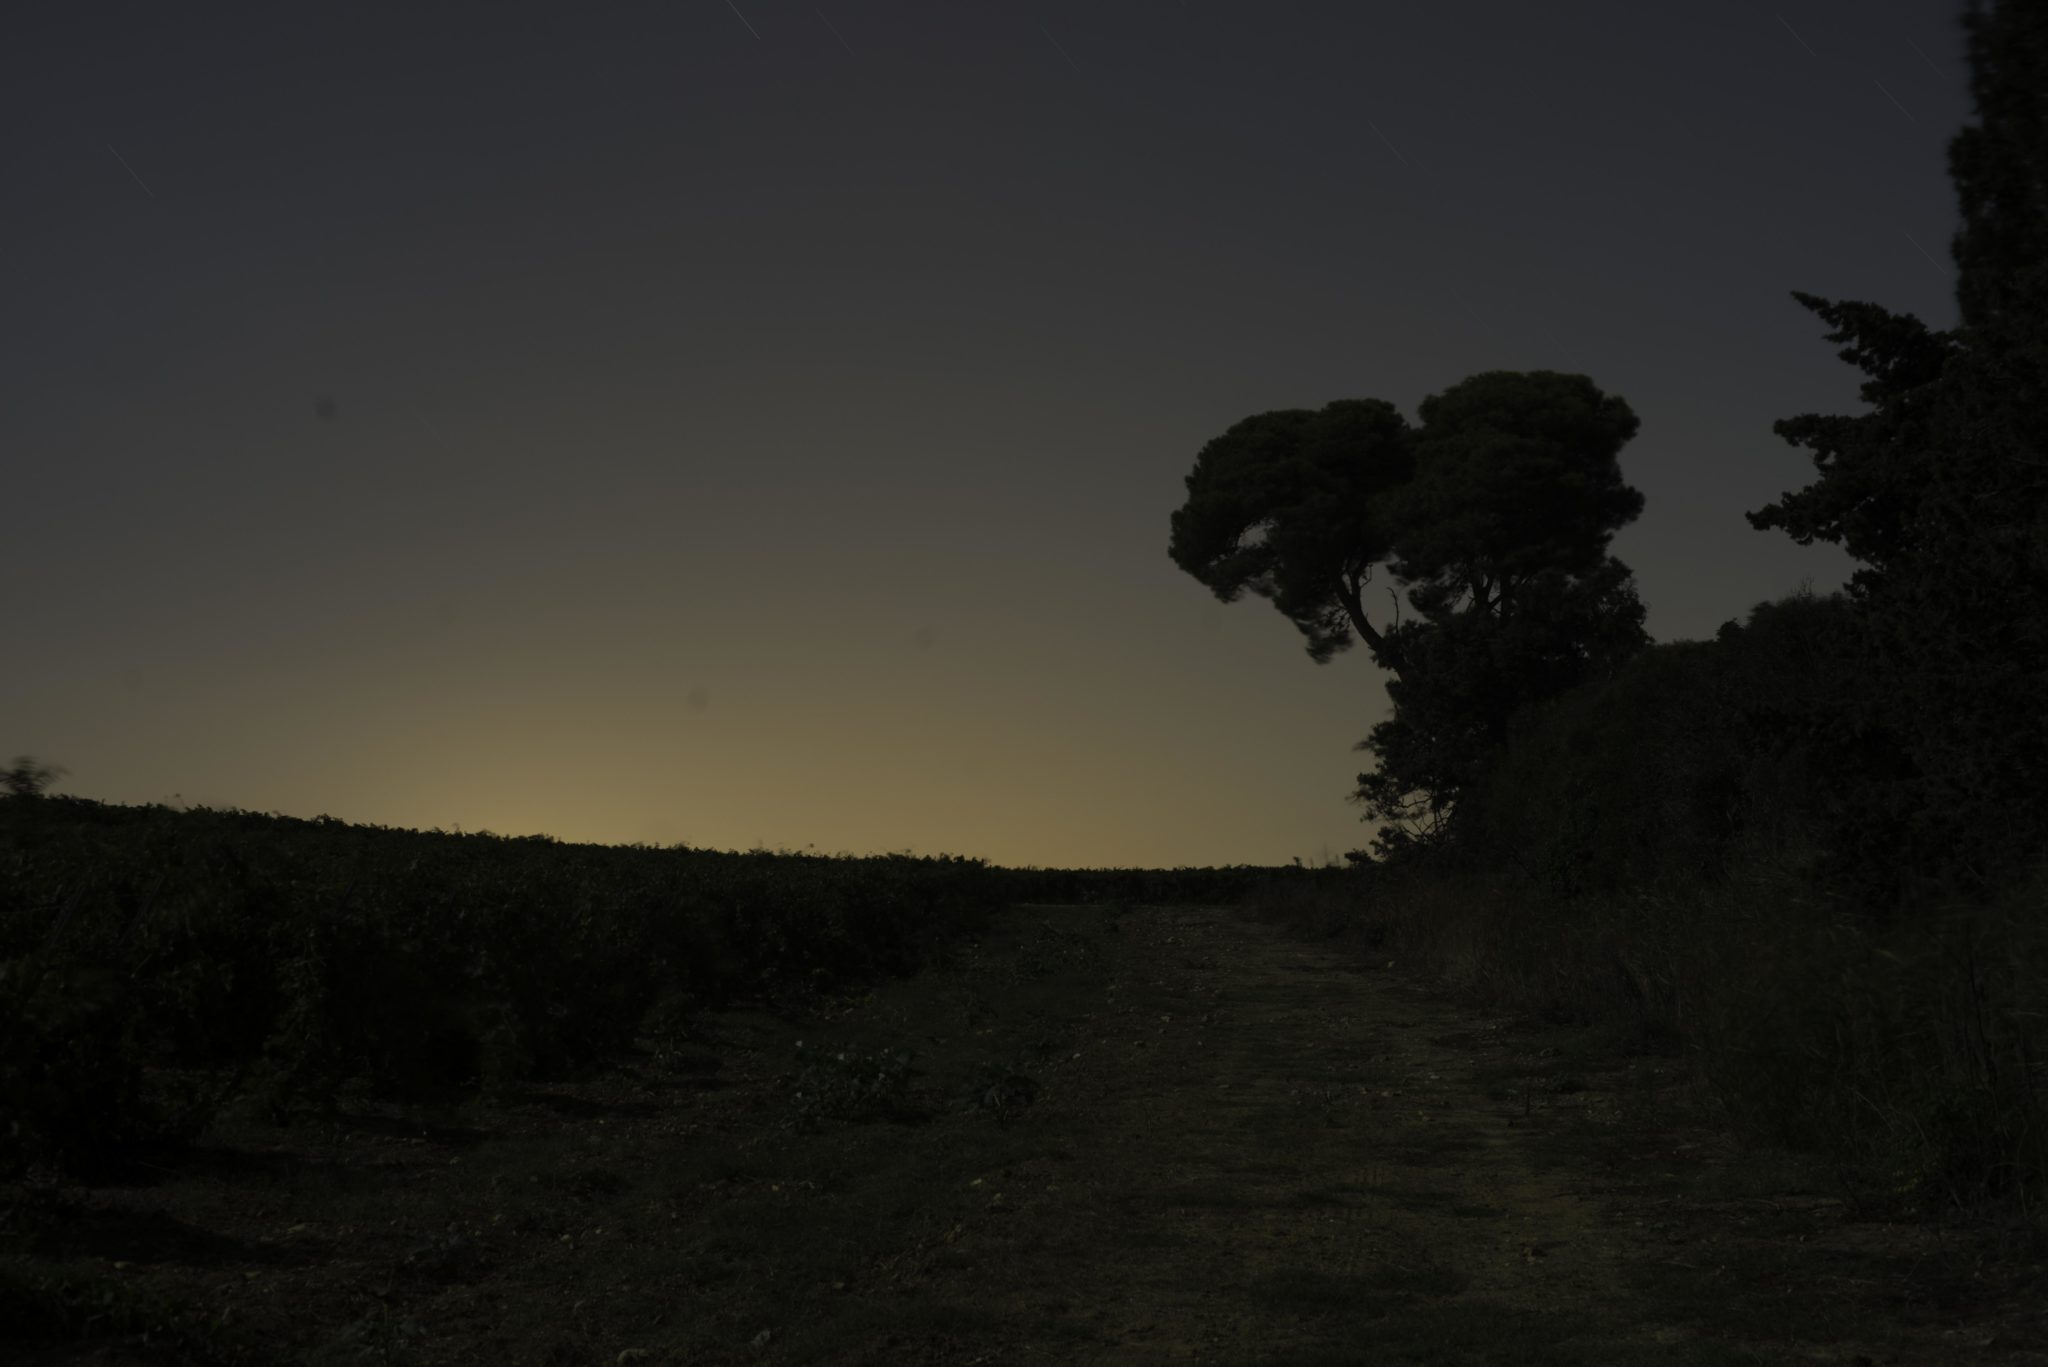 Artist-in-Residence, Rhapsodic Night Landscape Photographs and Exhibition in France, Environment